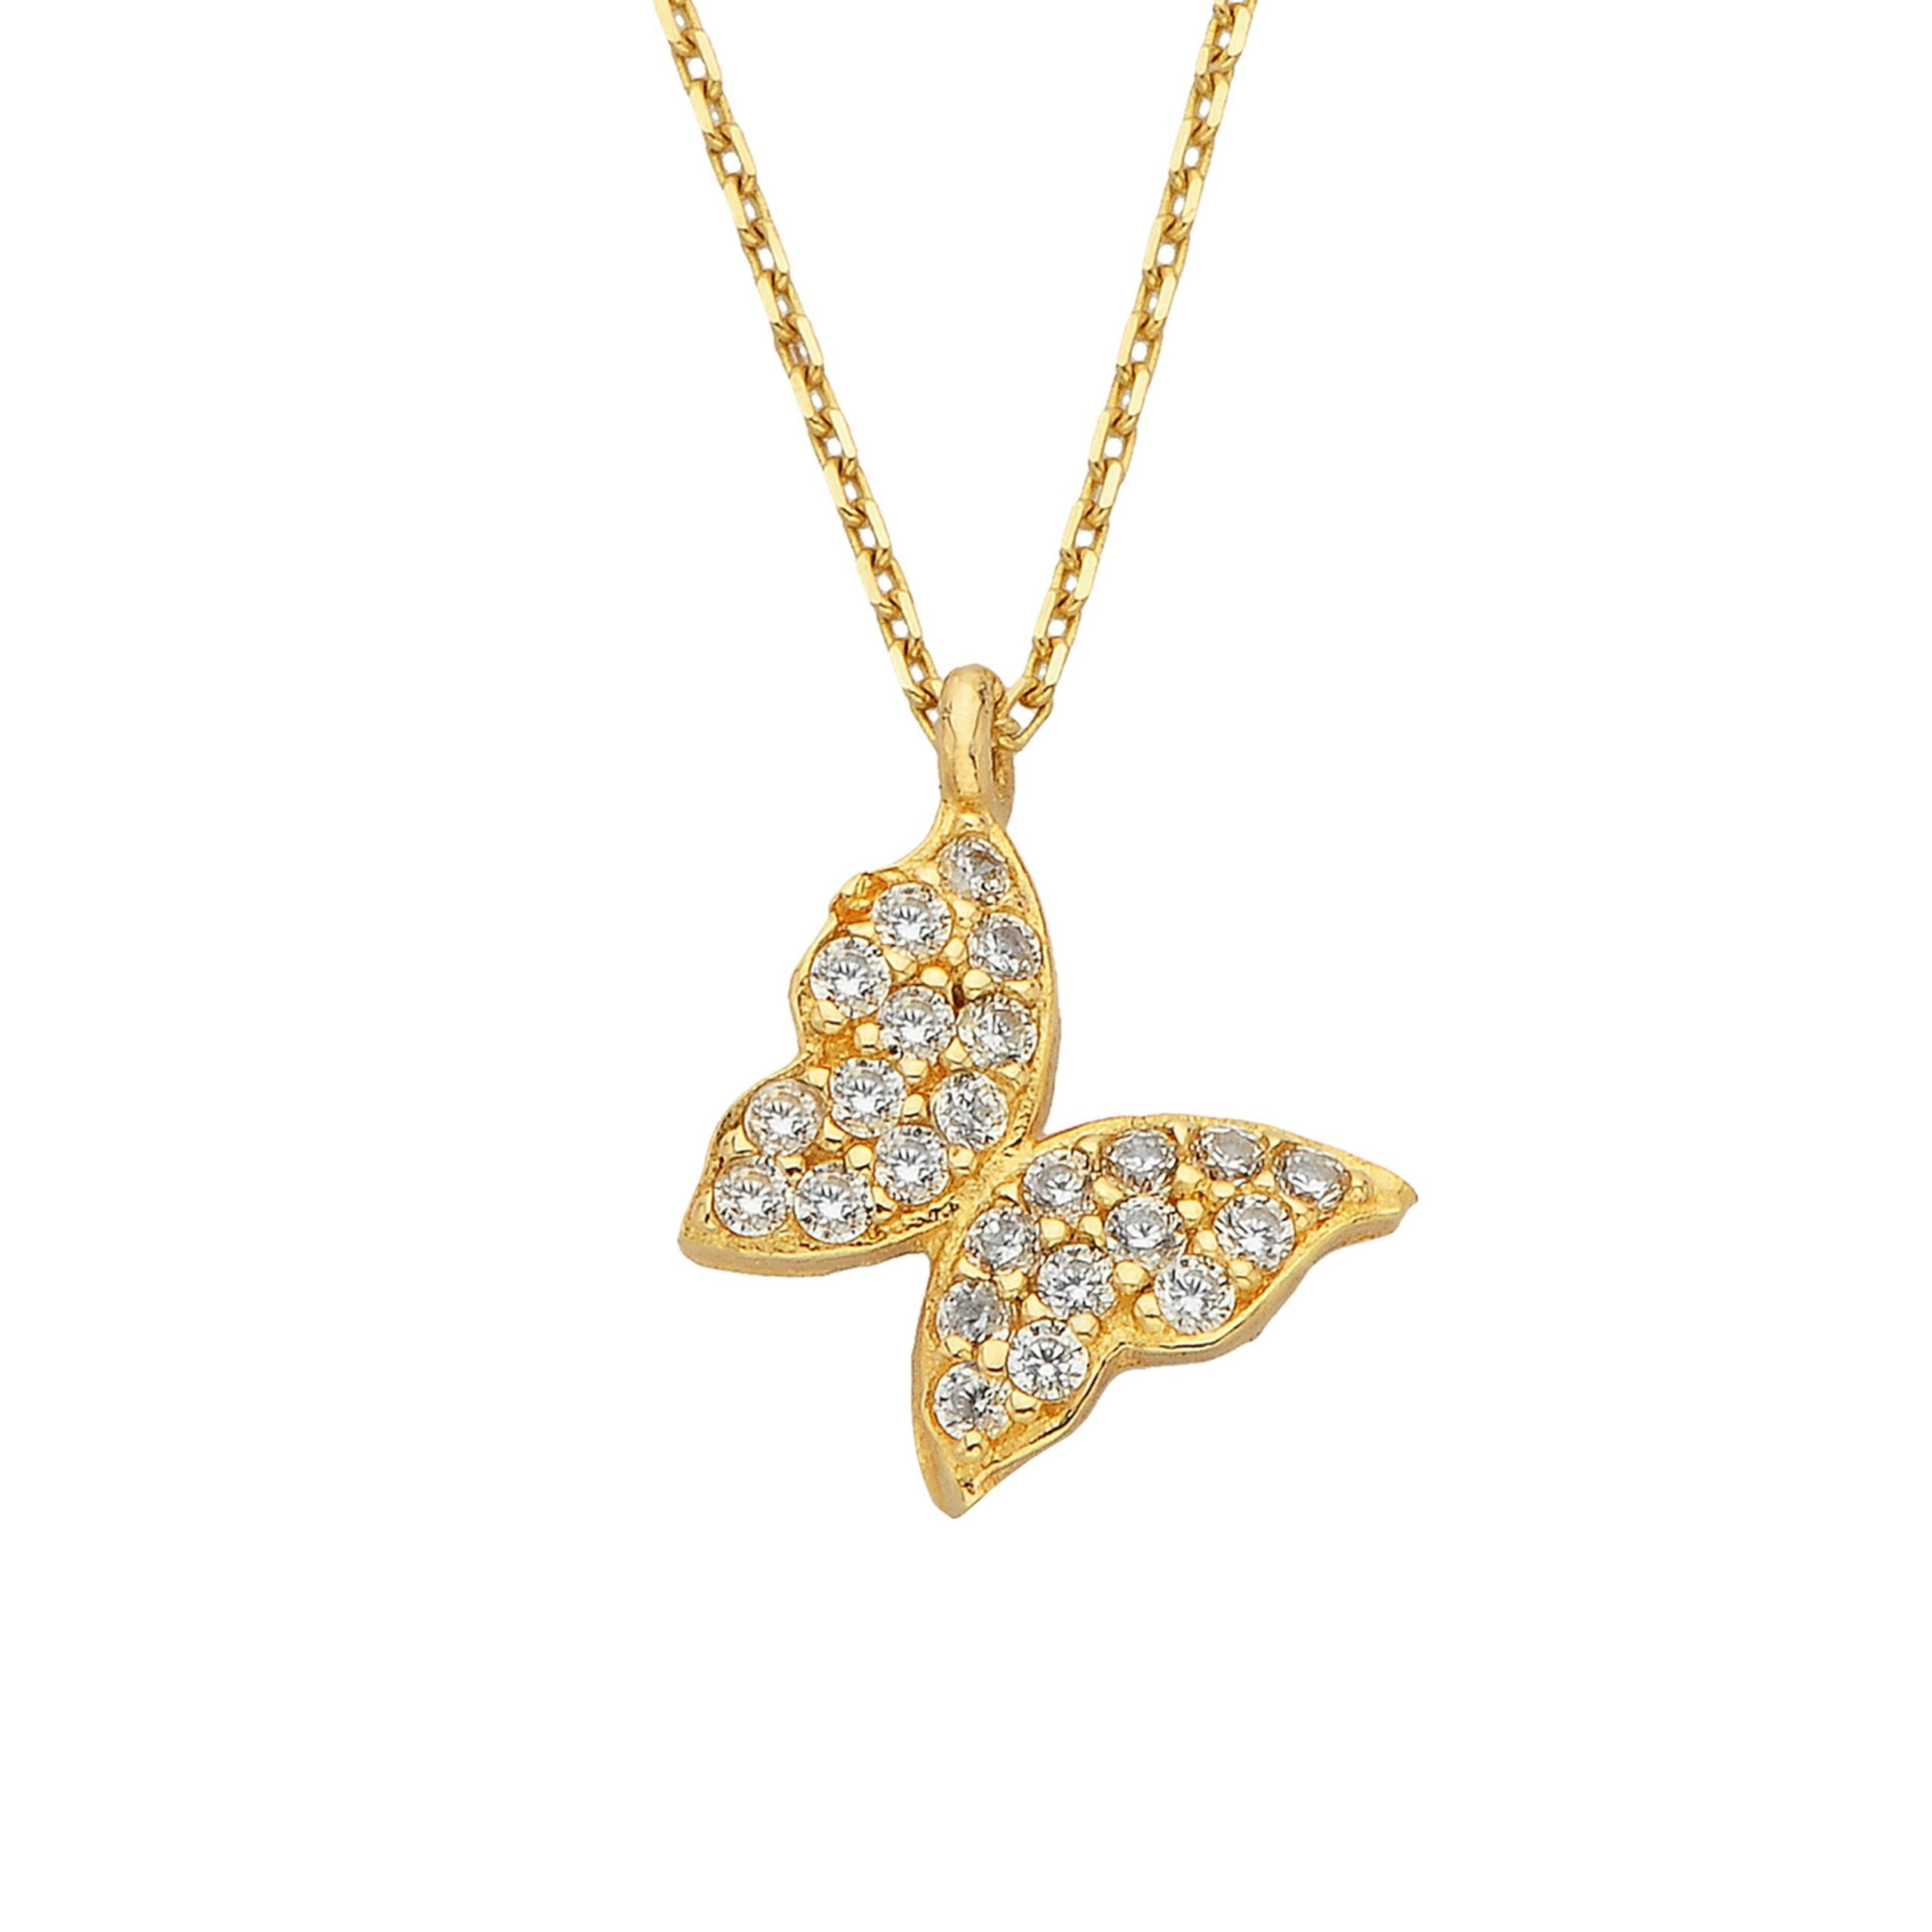 14K Real Solid Gold Butterfly Necklace | Charm Dainty Trendy CZ Pendant | Best Birthday Gift for Women Xmas Christmas Bithday Gift Mother's Day mom